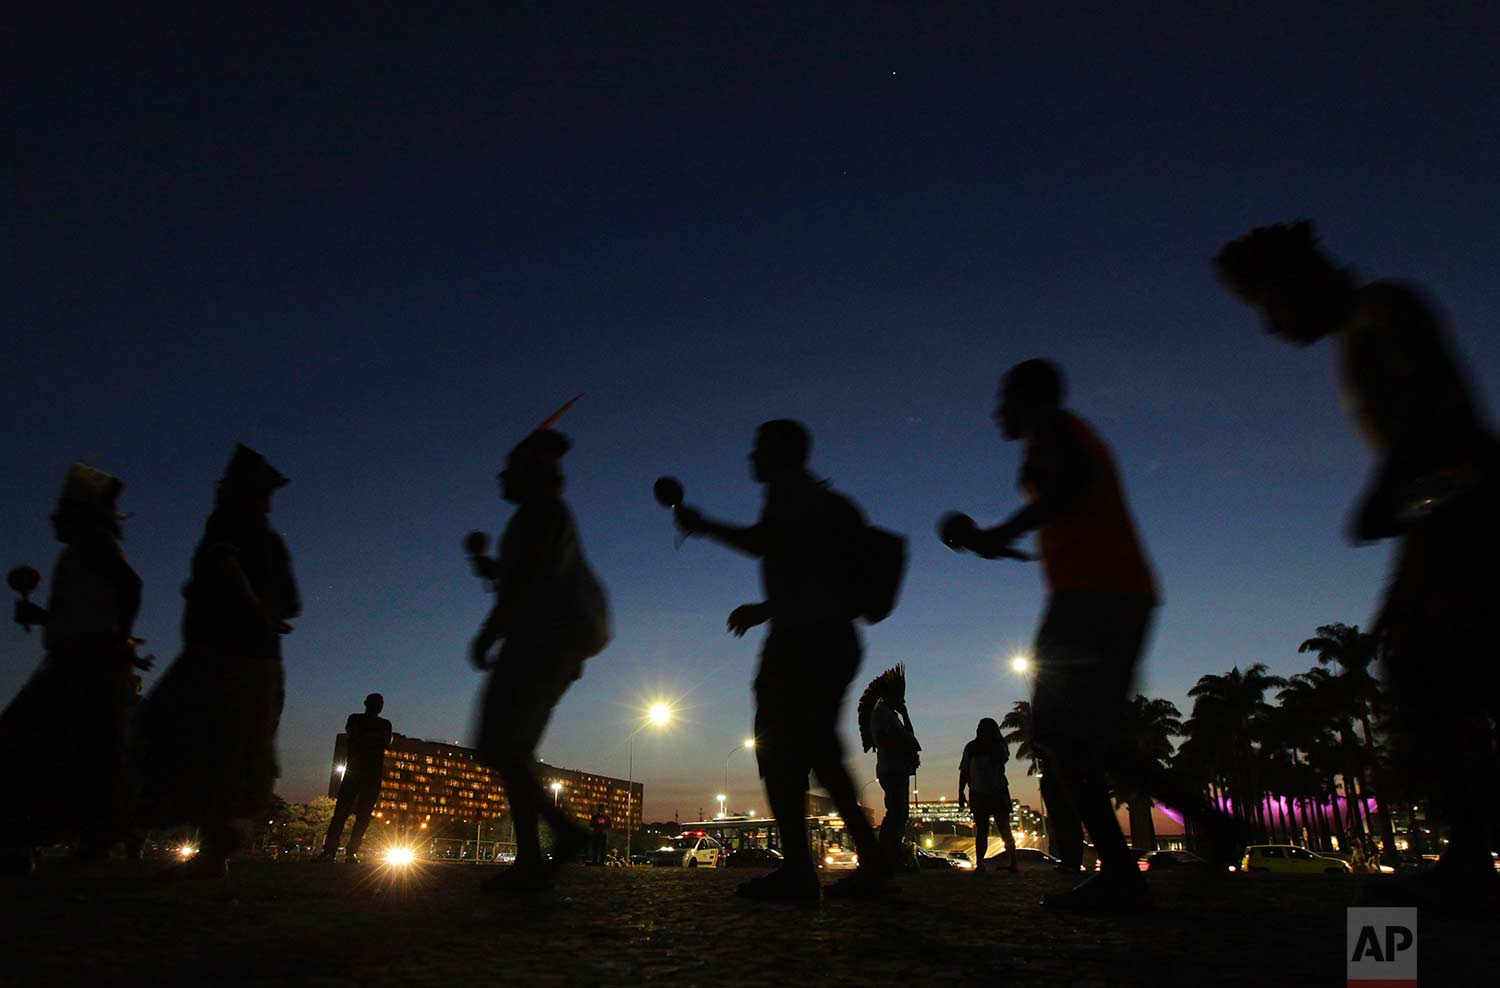 Indigenous people perform a ritual dance outside the Supreme Court in Brasilia, Brazil, Tuesday, Aug. 15, 2017. (AP Photo/Eraldo Peres)